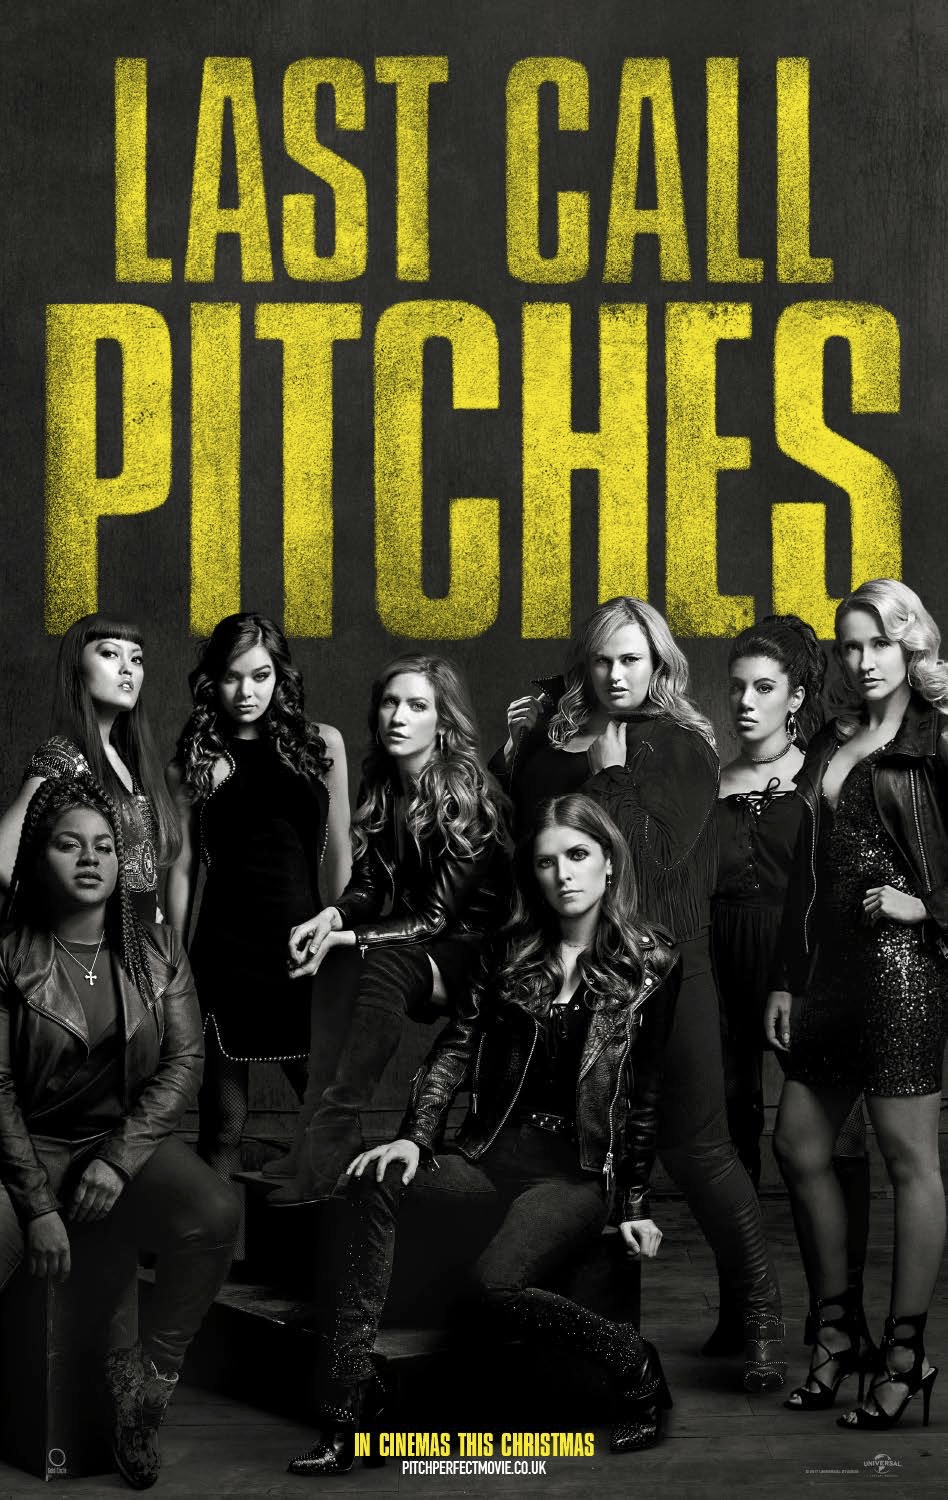 pitch perfect 3 first look image